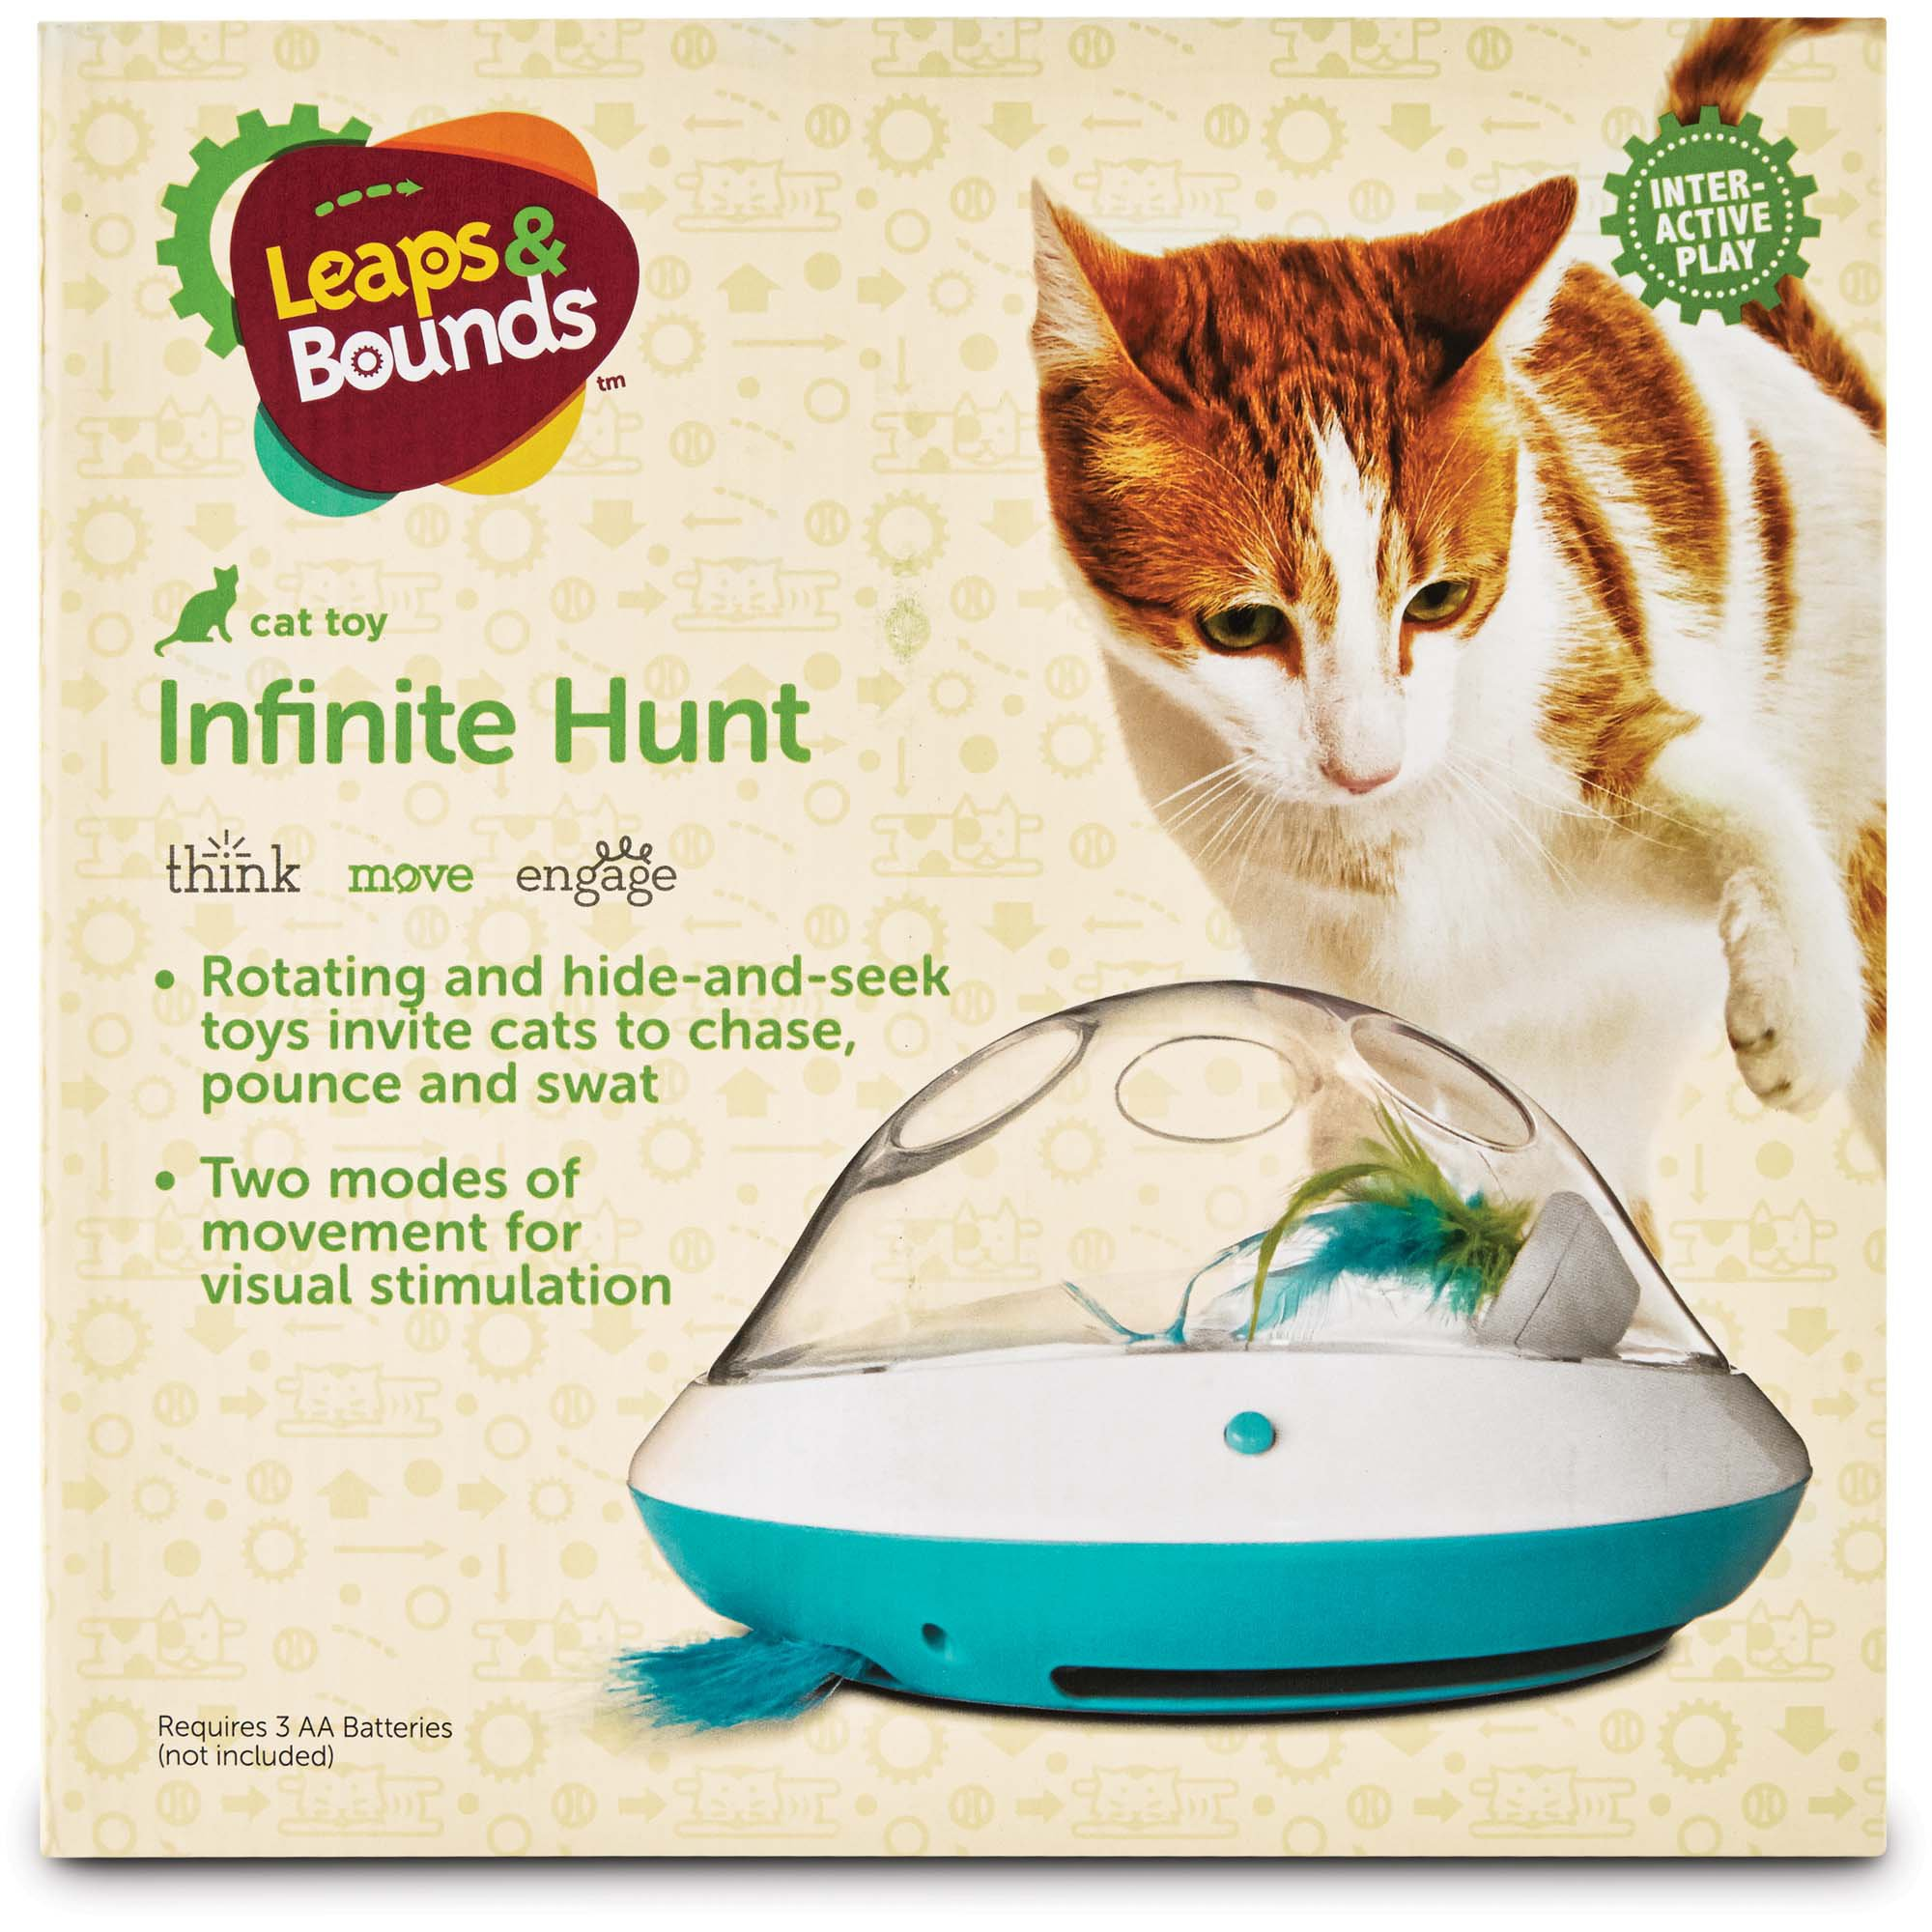 Leaps & Bounds Electric Play Dome for Cats